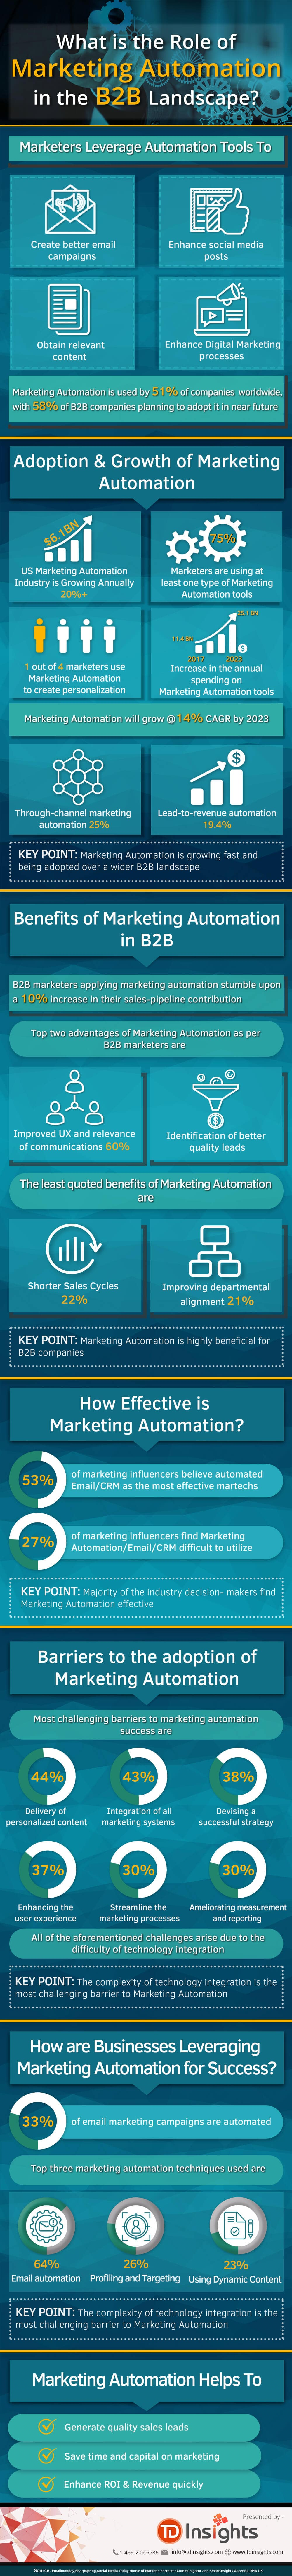 What is the Role of Marketing Automation in the B2B Landscape